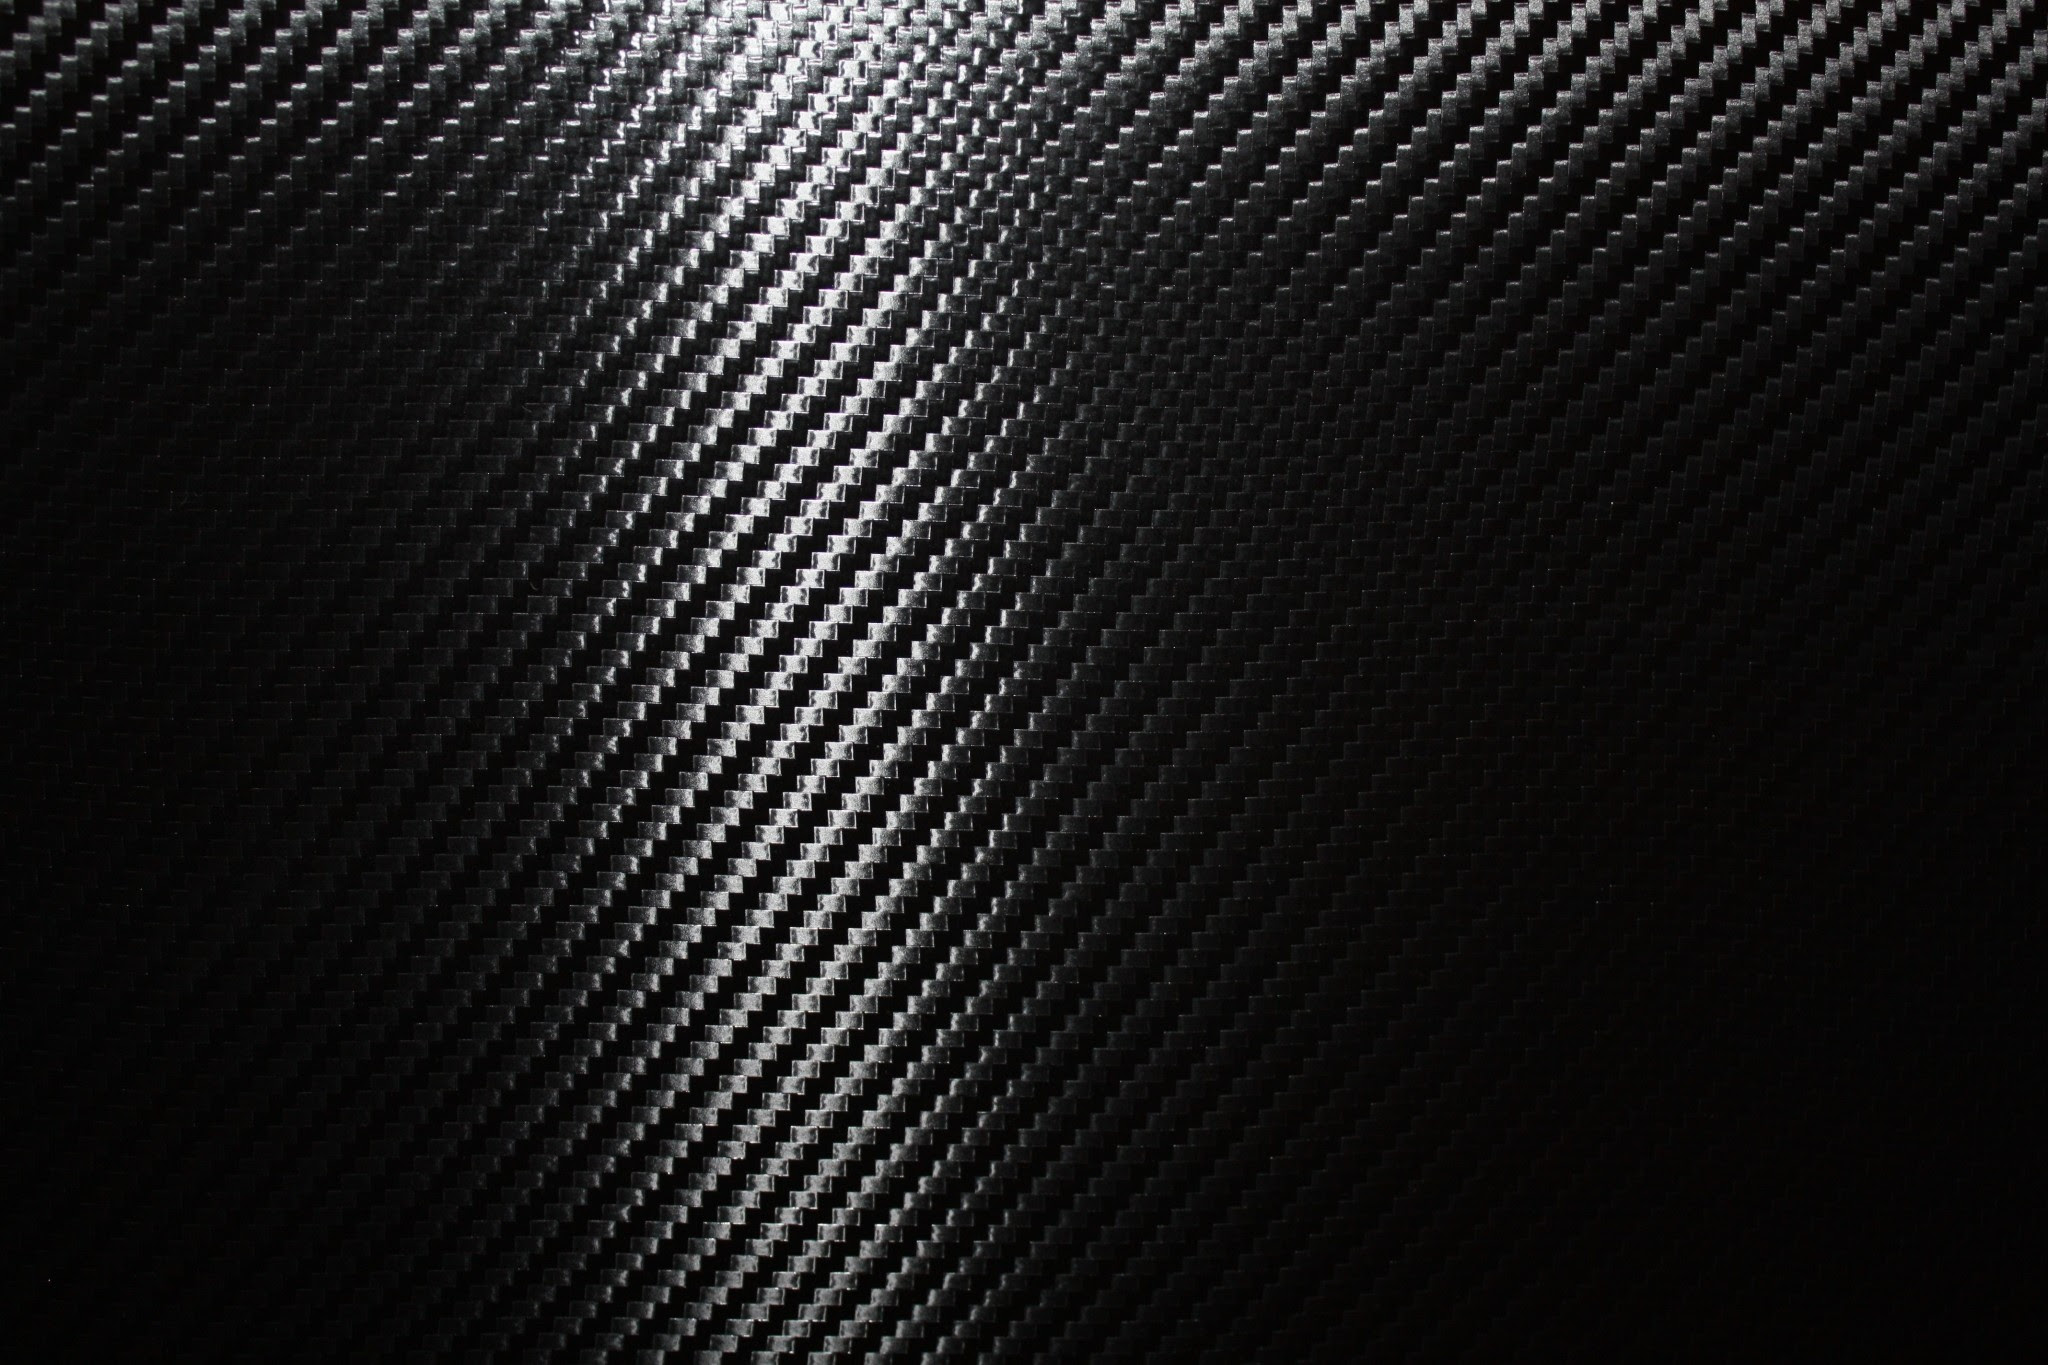 Download 800 Wallpaper Black Carbon Hd  Terbaru